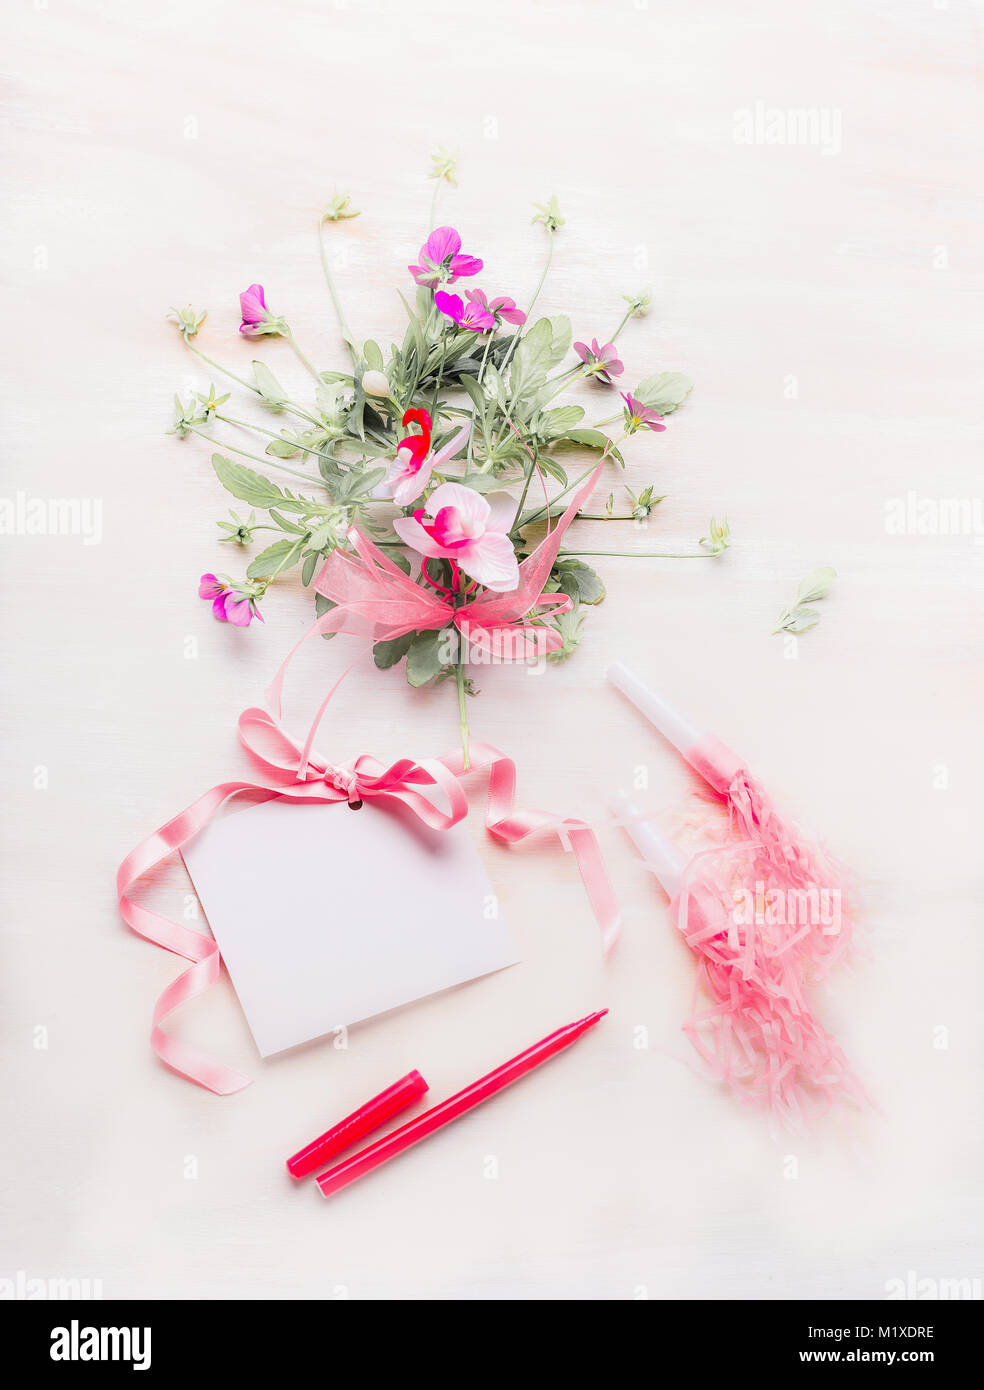 Lovely flowers bunch and blank greeting card with pink ribbon and lovely flowers bunch and blank greeting card with pink ribbon and pen or marker on white wooden background festive greeting concept mightylinksfo